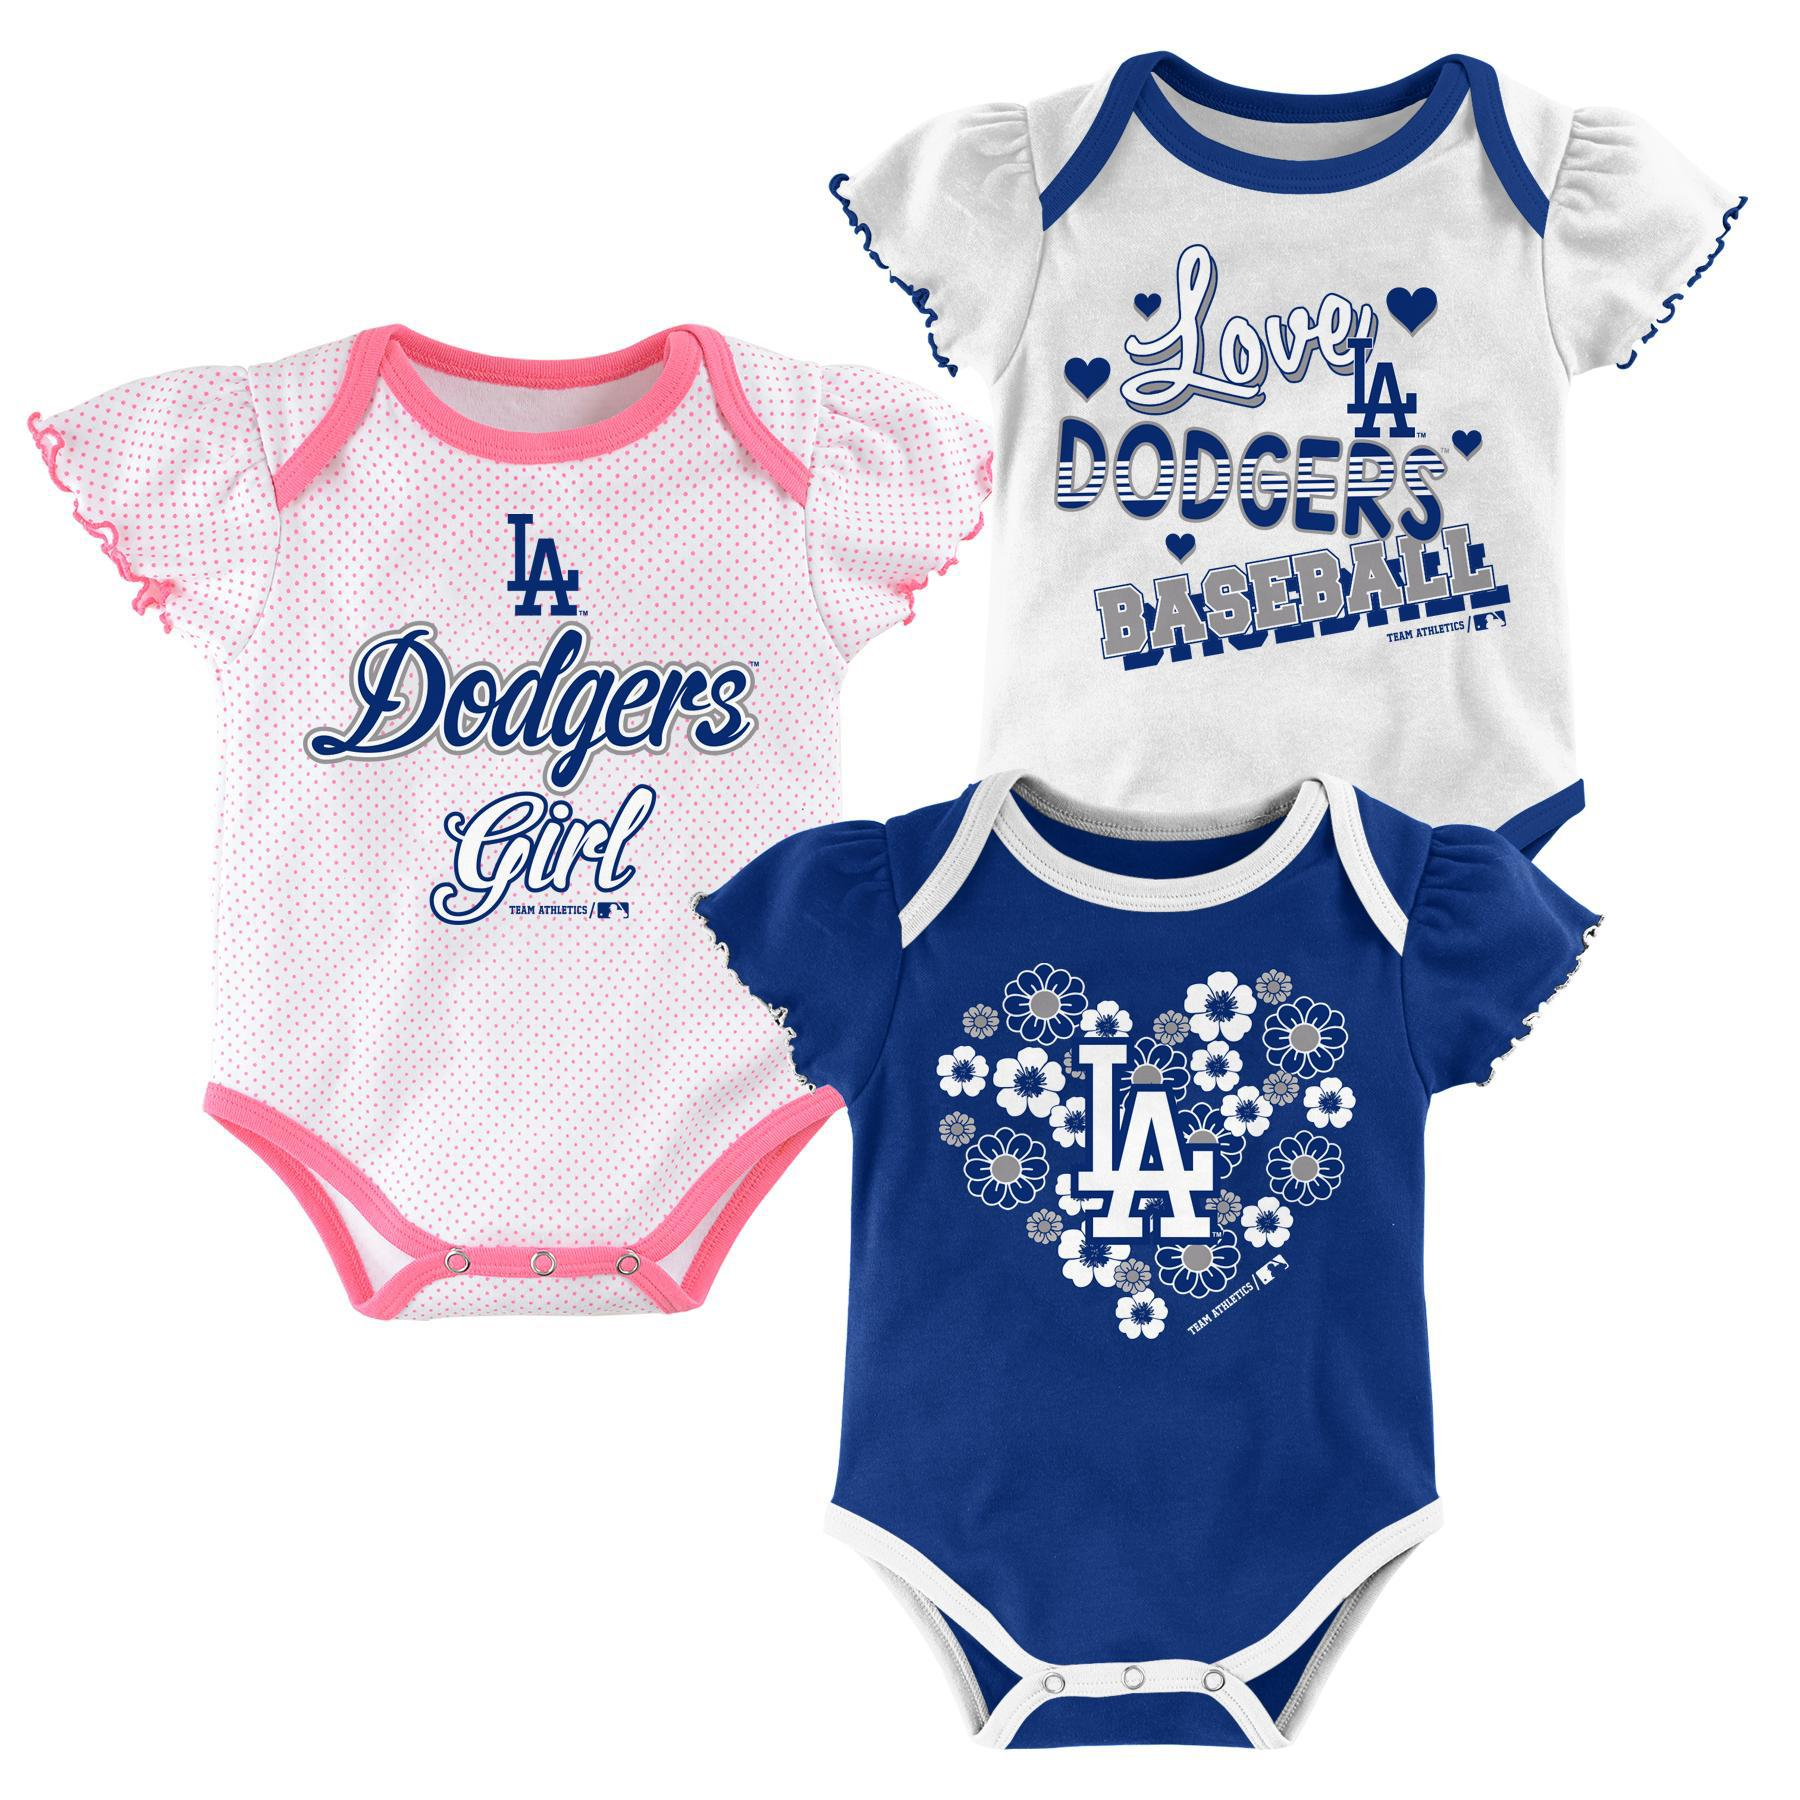 Mlb Newborn Infant Girls 3 Pack Bodysuits Los Angeles Dodgers